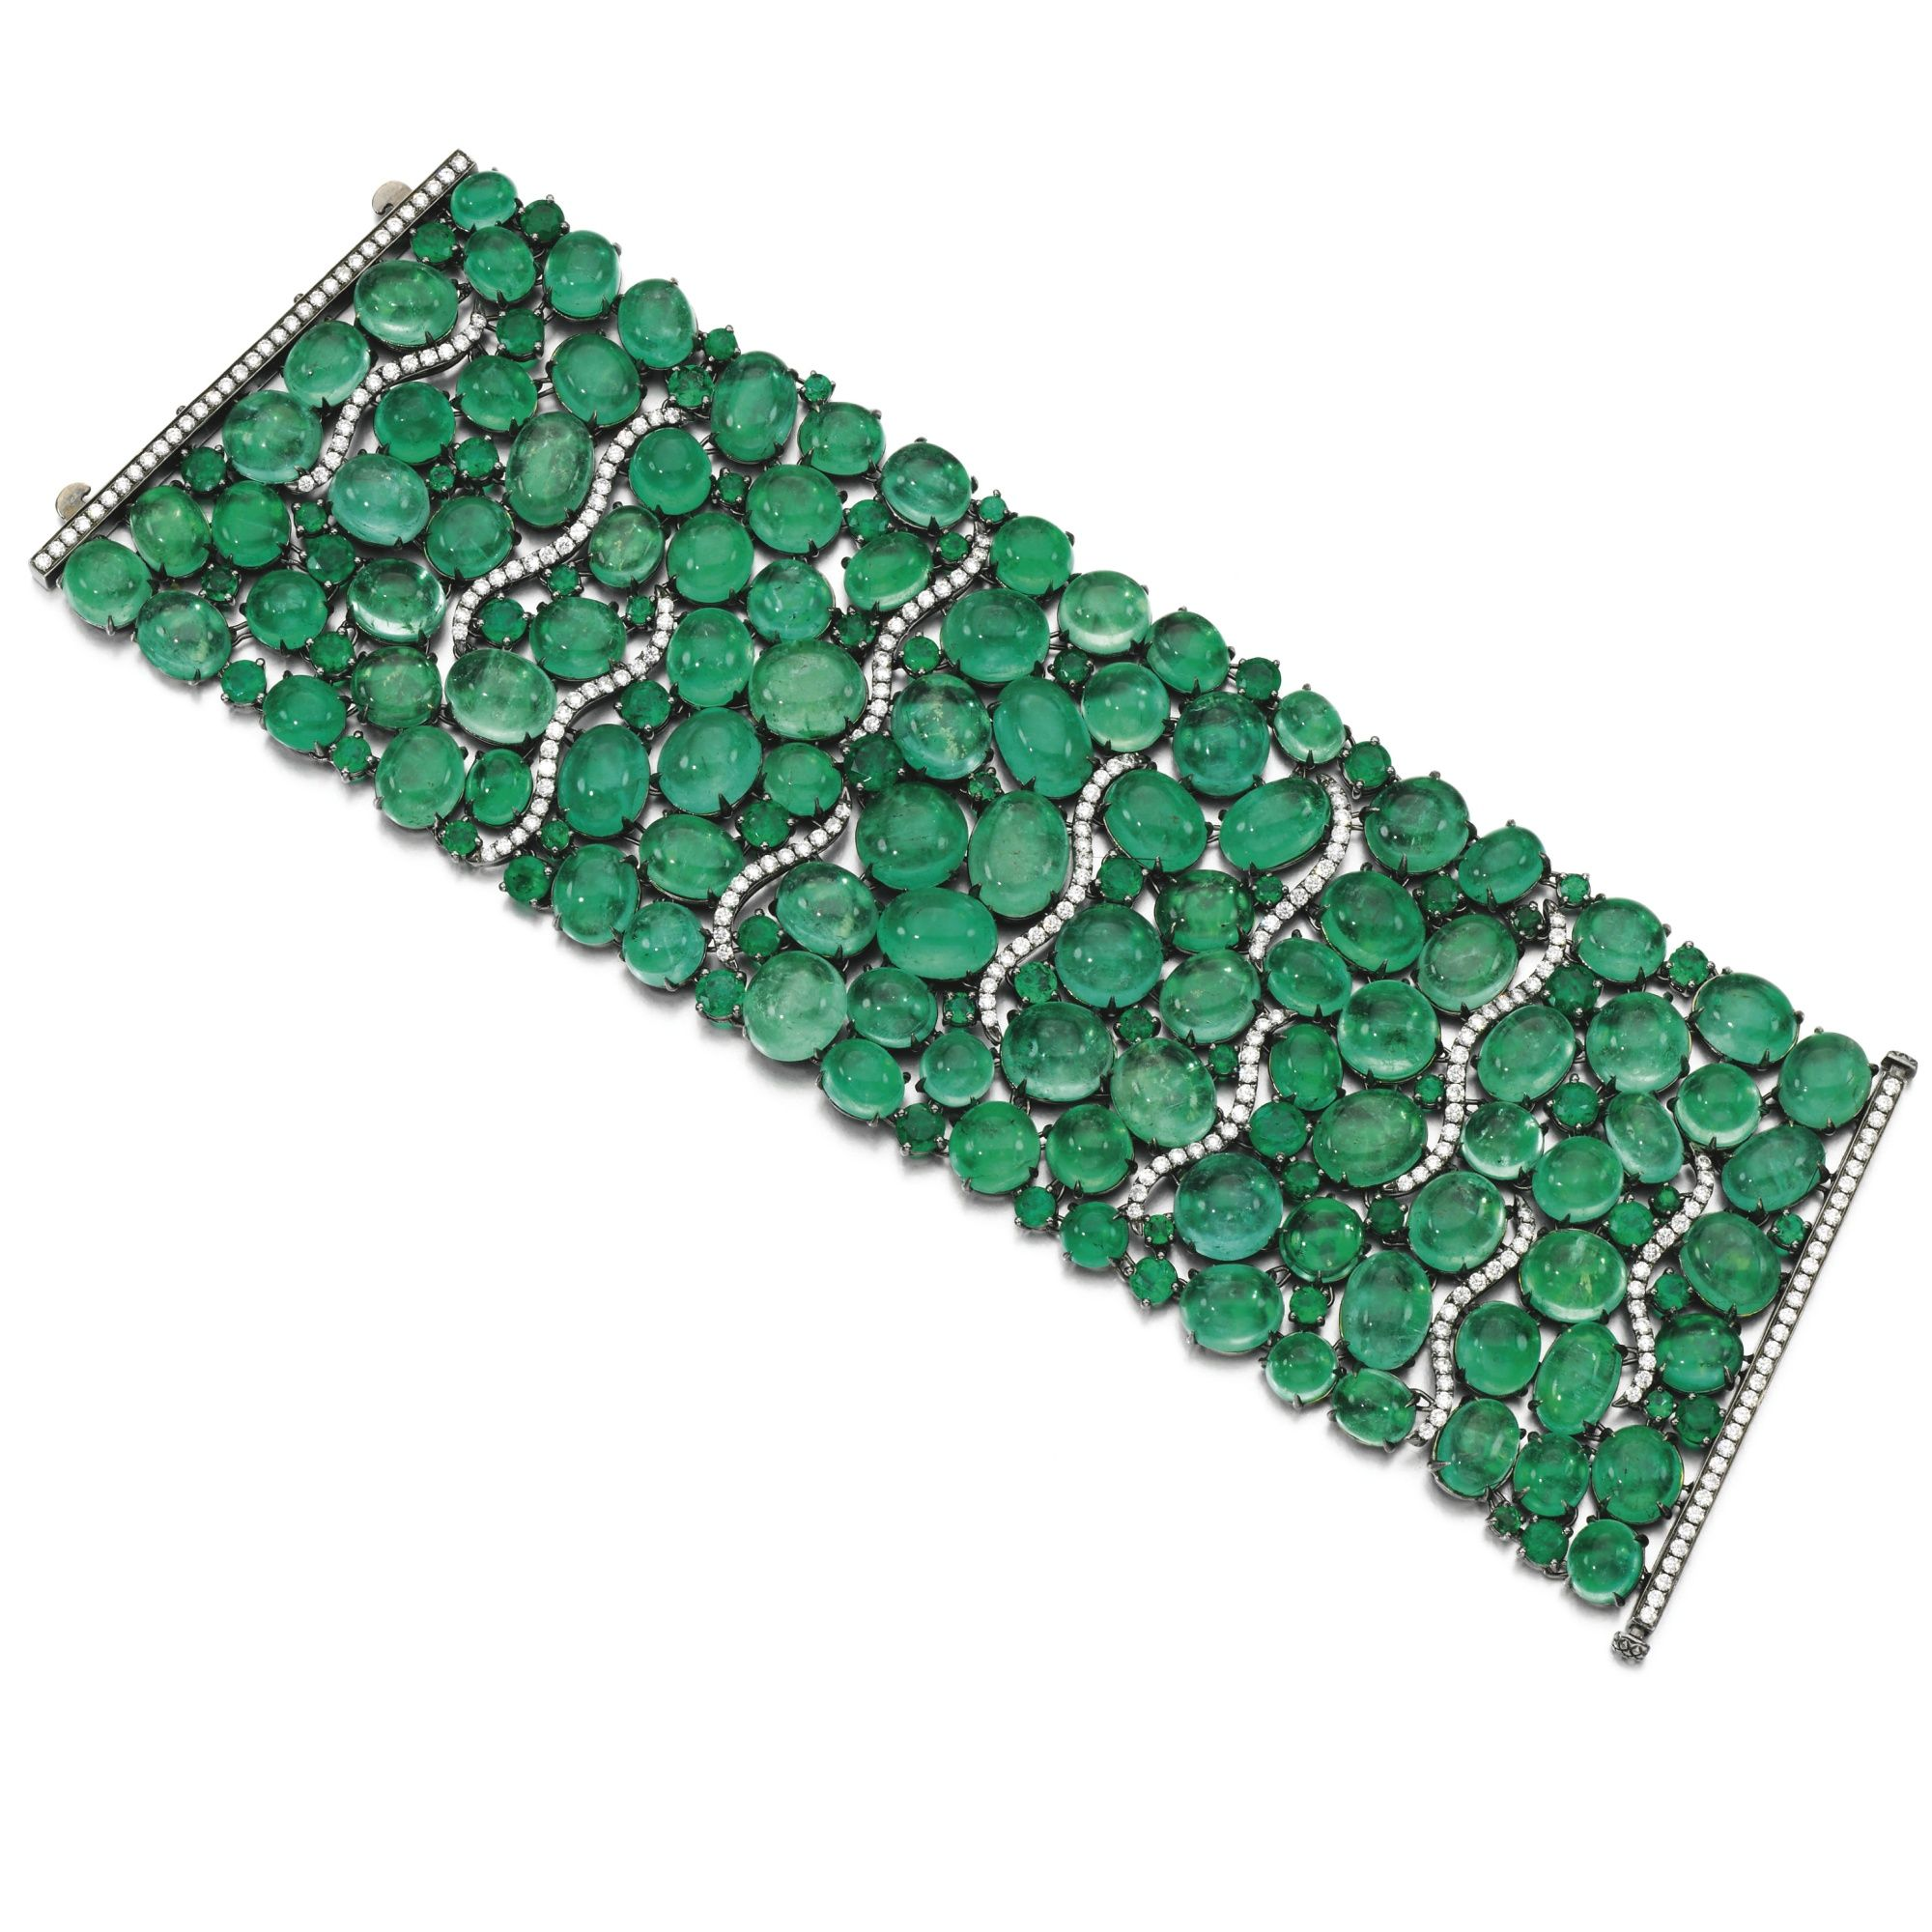 p s green sharp emerald quartz heat treated